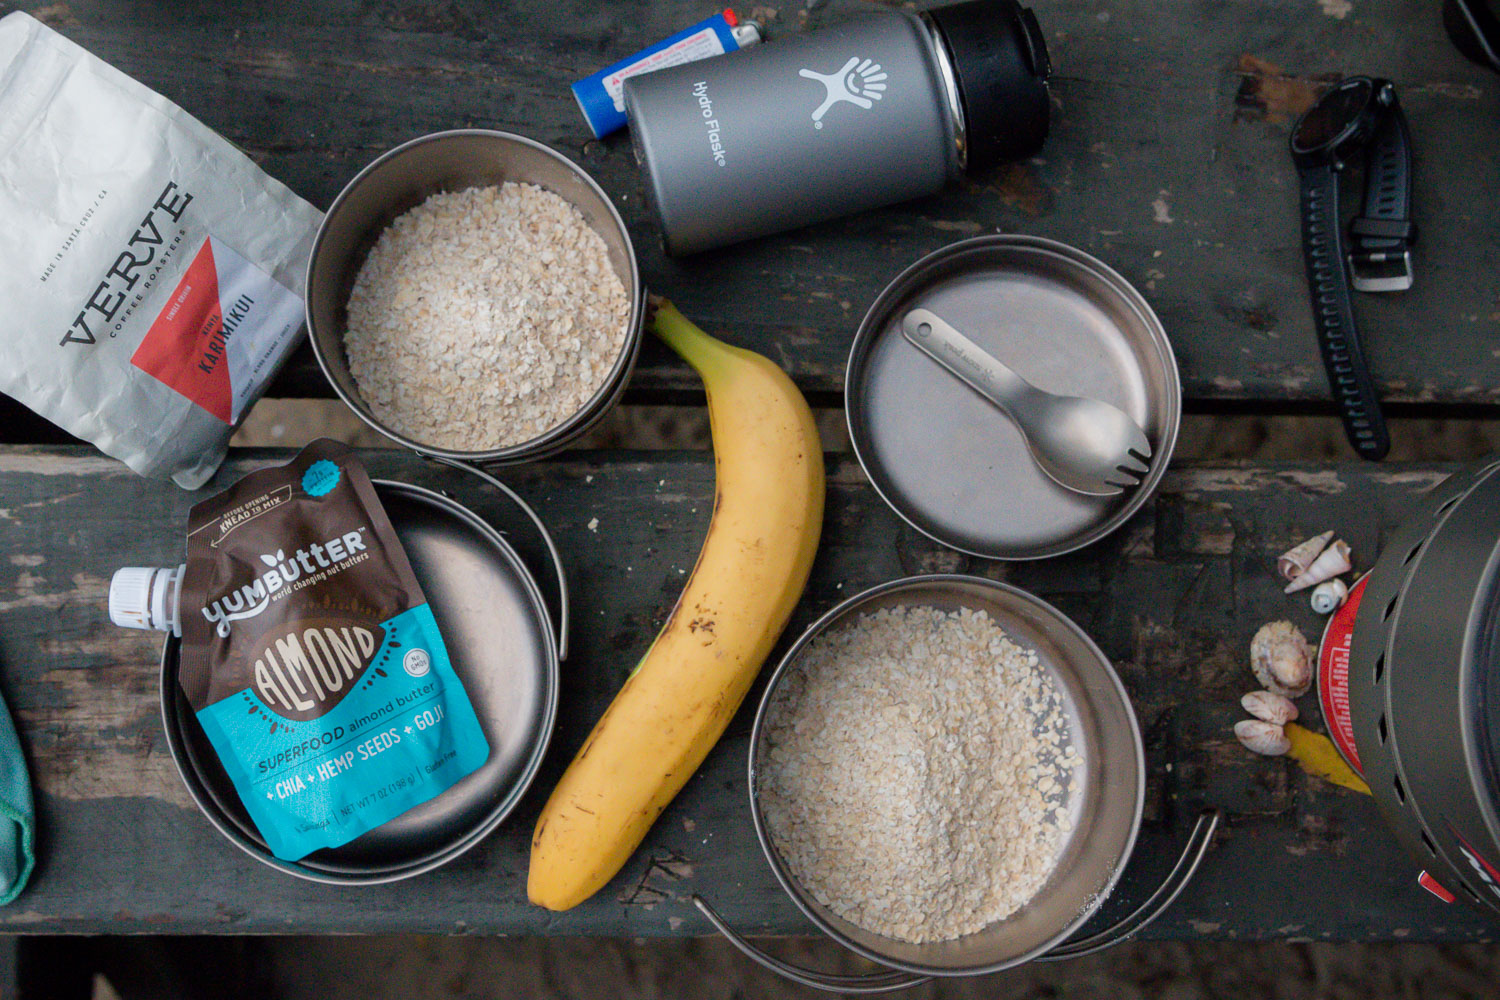 typical breakfast scene // Multi Compact Titanium Cook-set from Snow Peak + Hydro Flask Coffee Mug